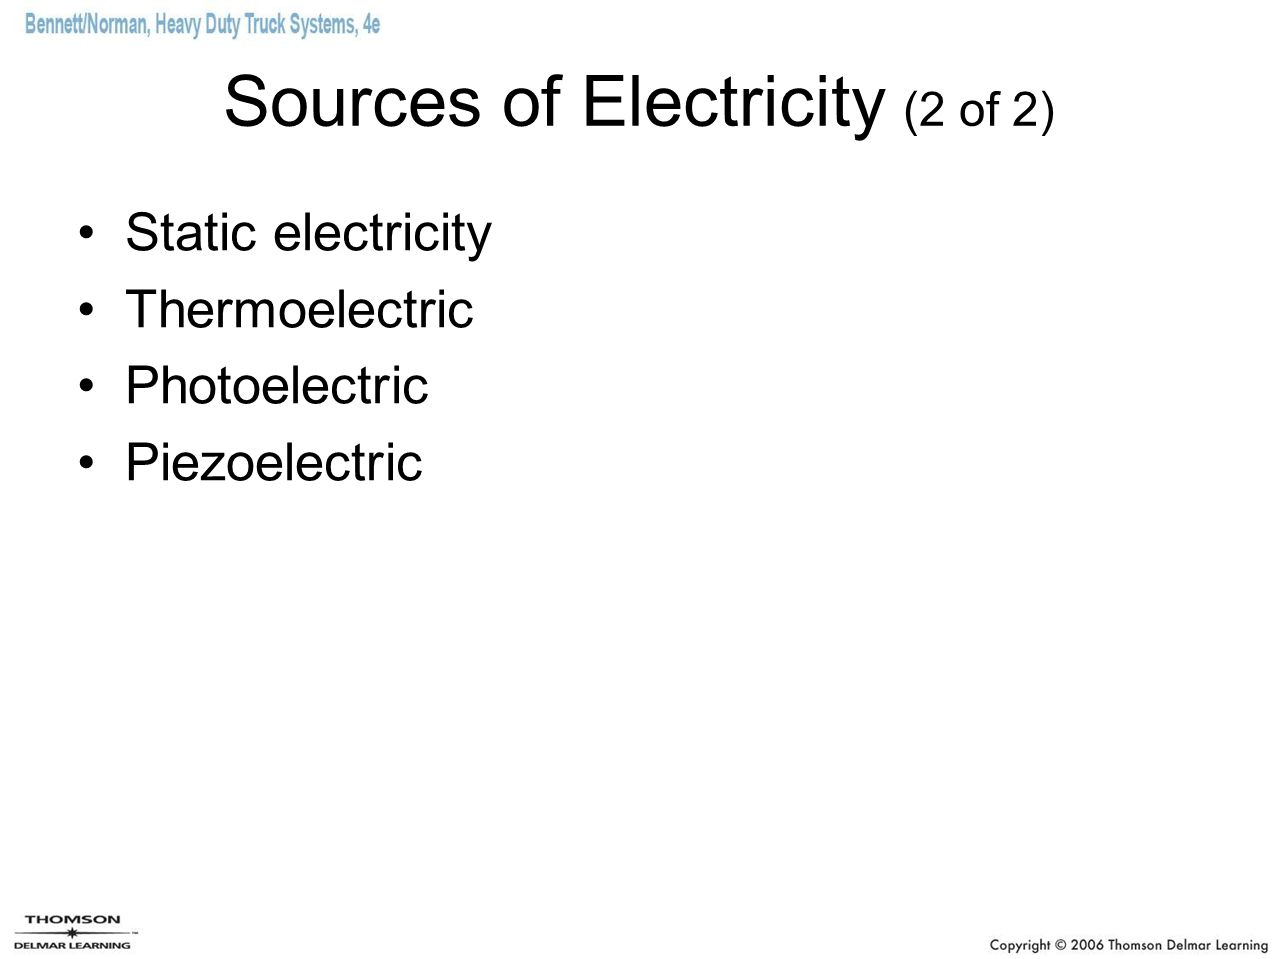 Sources of Electricity (2 of 2)